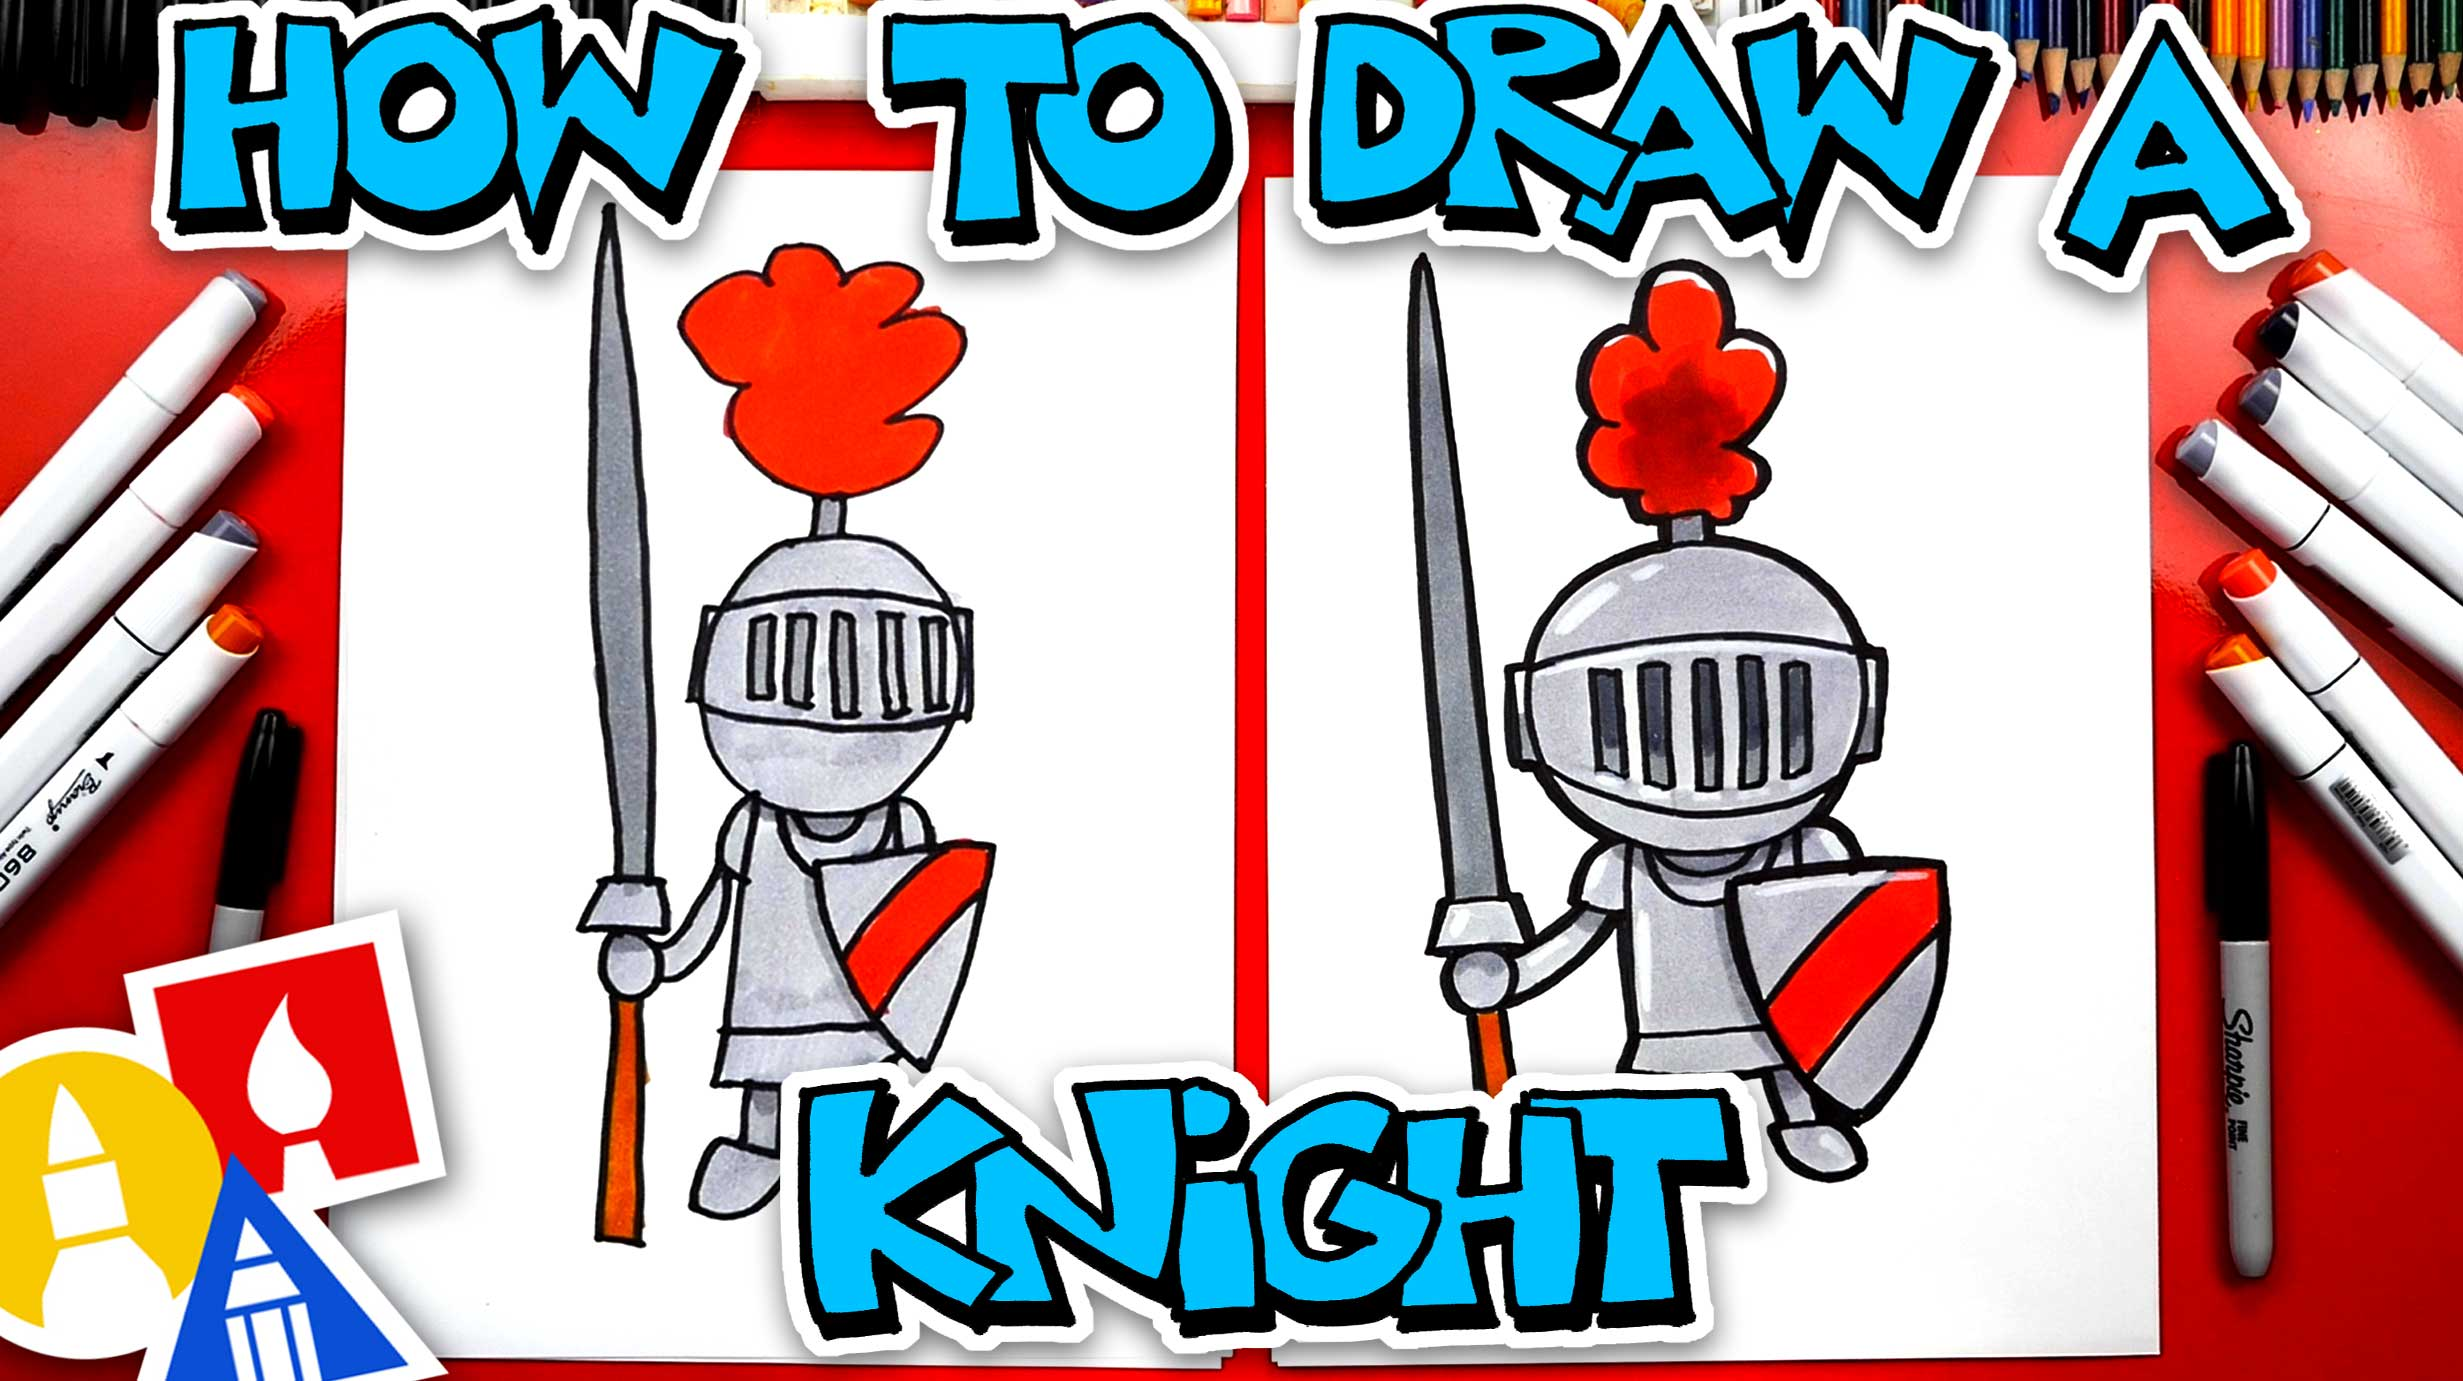 How To Draw A Knight In Shining Armor - Art For Kids Hub